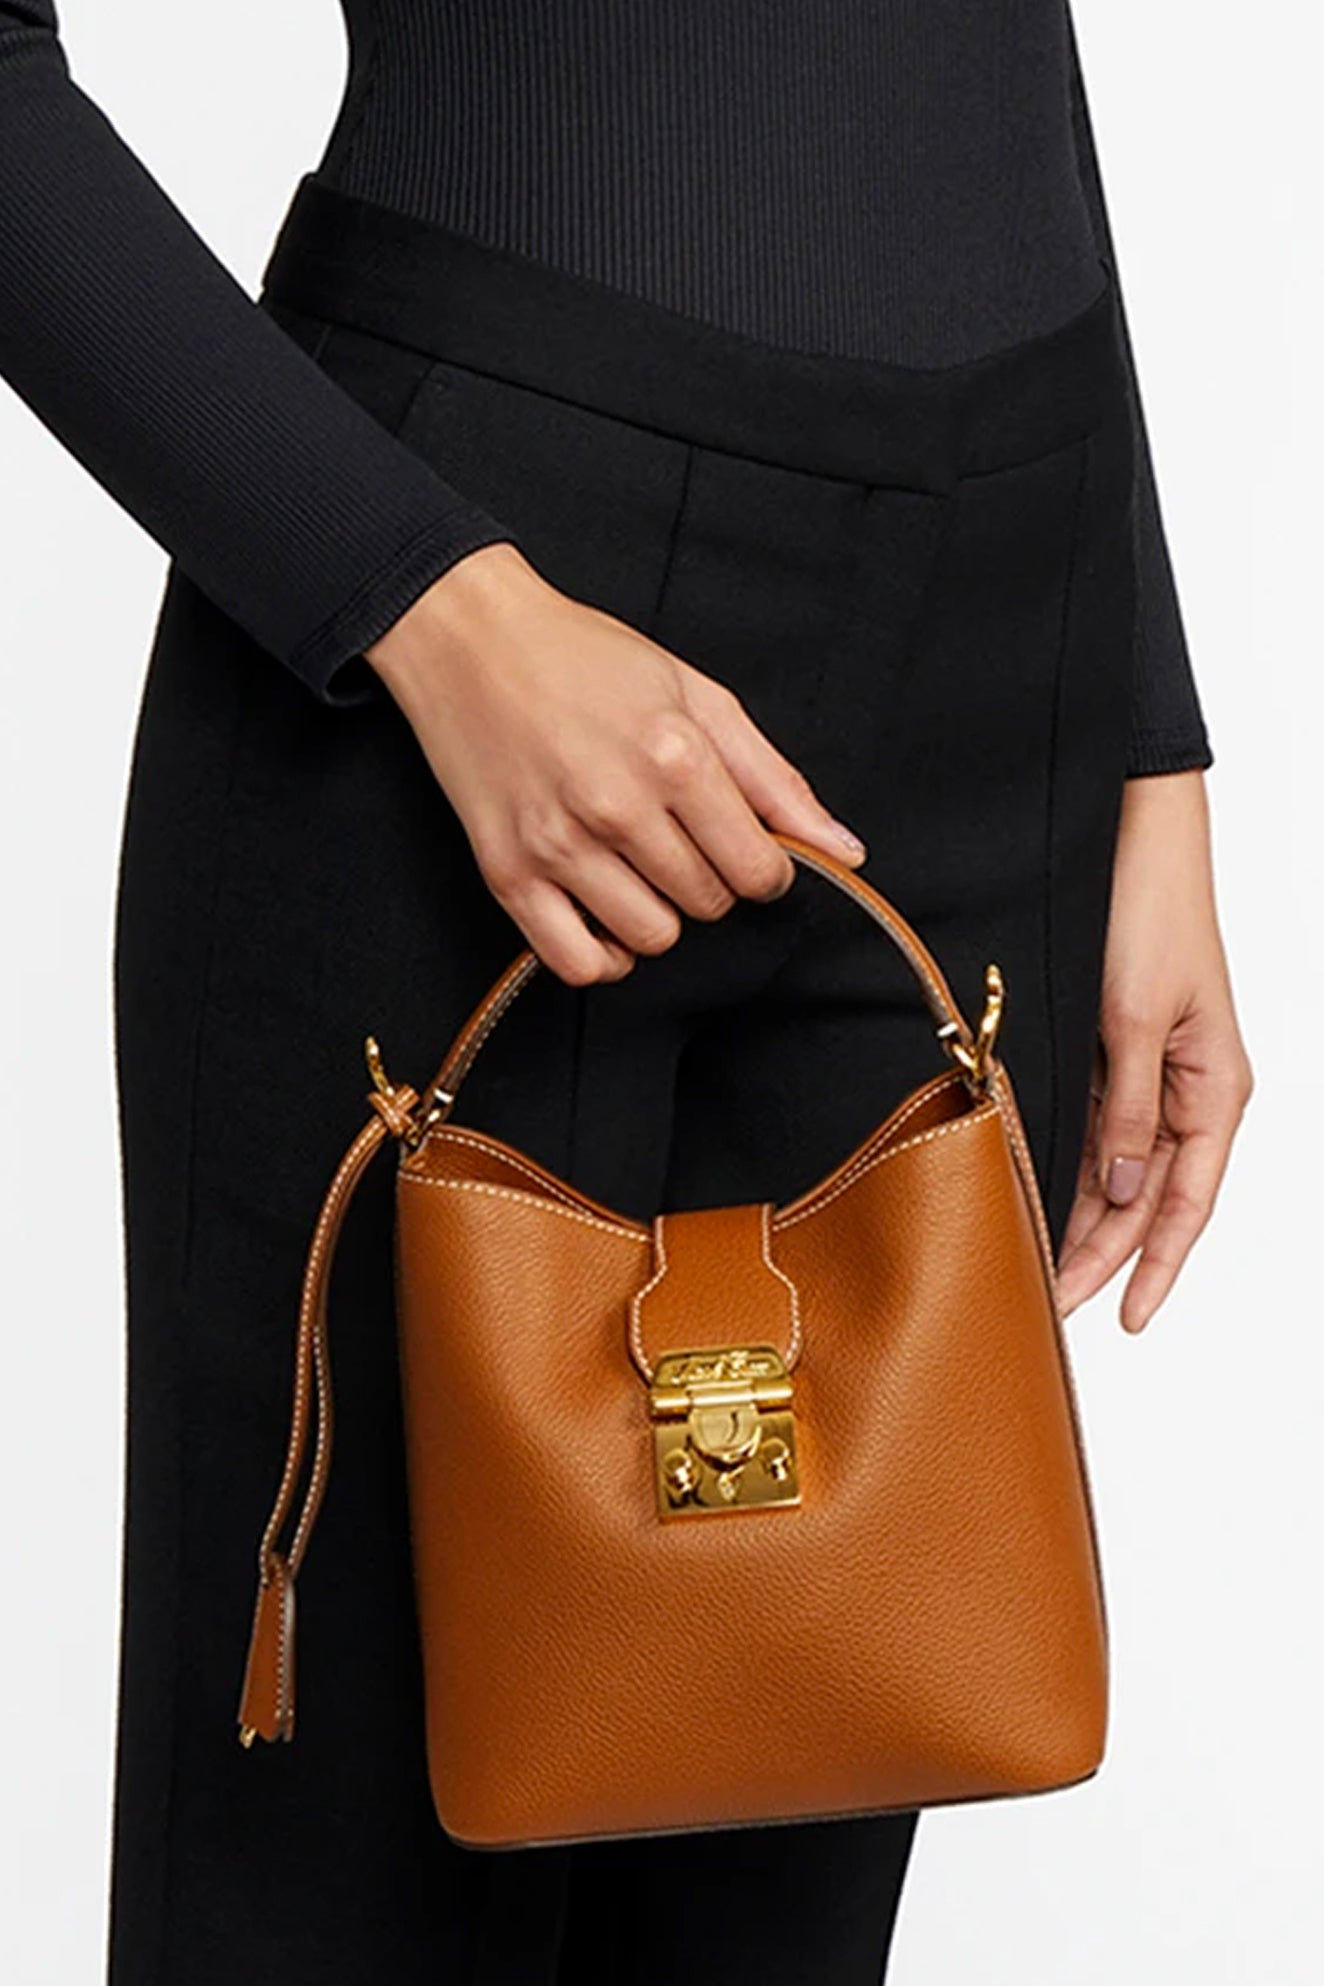 MURPHY SMALL BUCKET BAG, tumbled grain acorn